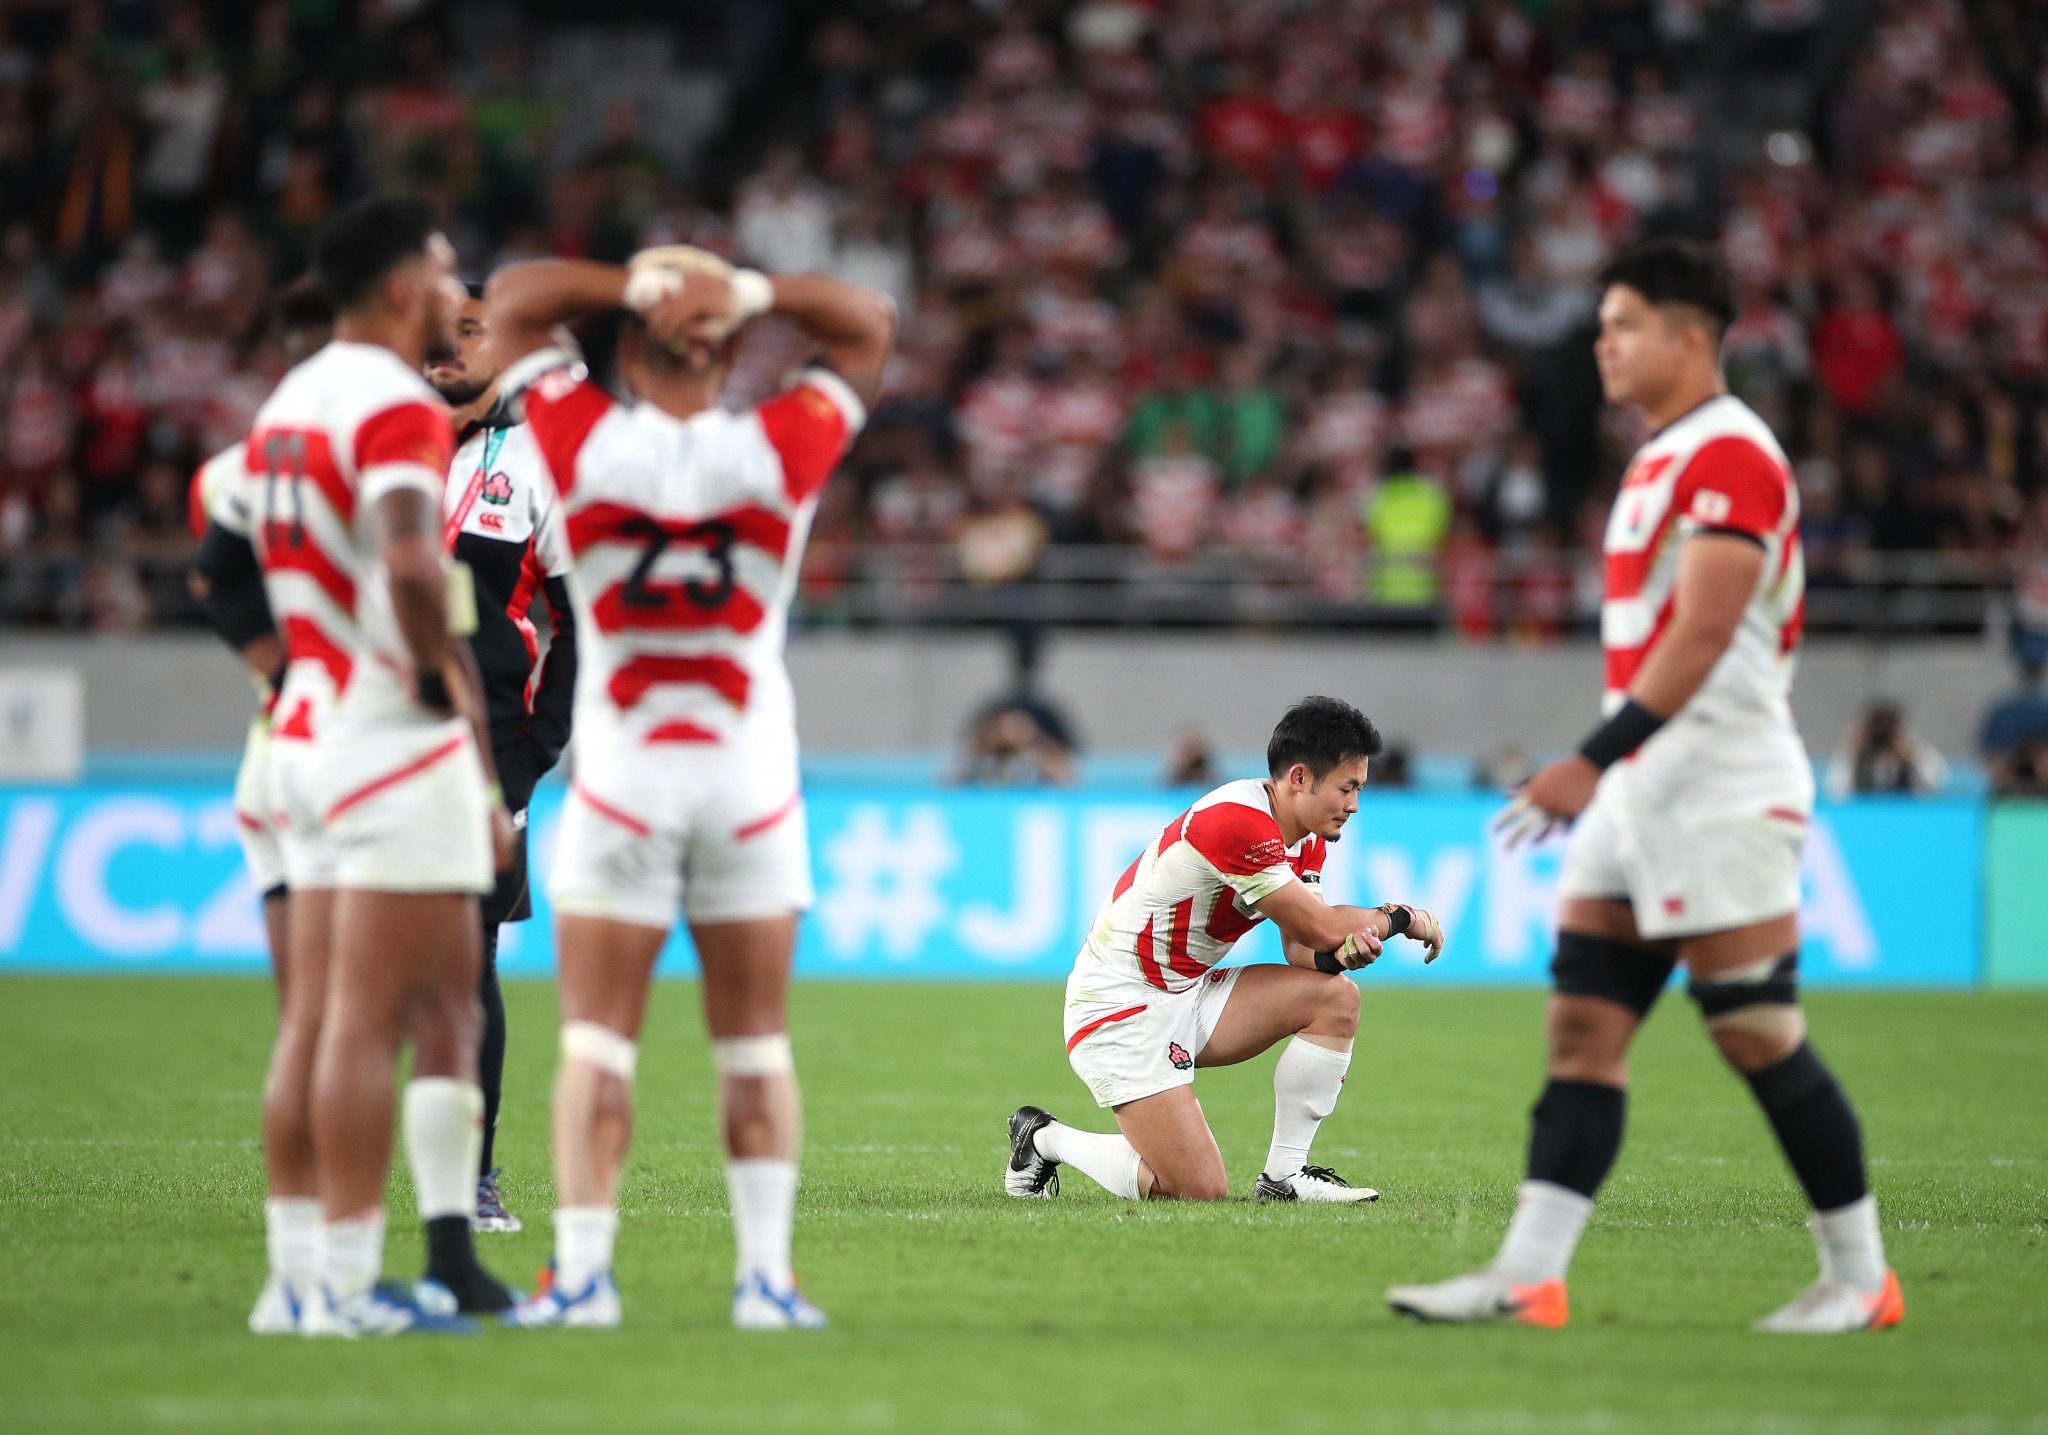 The Japanese side were visibly upset as the full-time whistle went and they were knocked out of the tournament at the quarter-final stage ©Getty Images